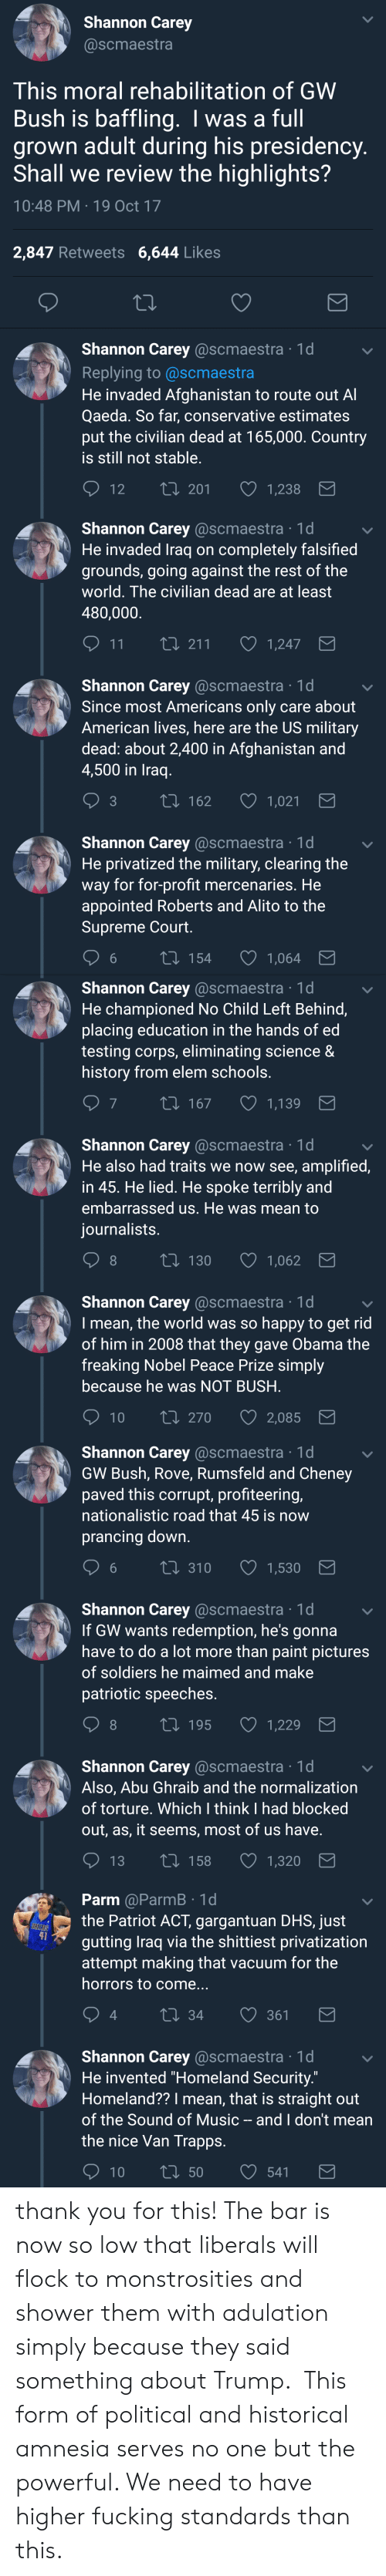 "Fucking, Music, and Obama: Shannon Carey  @scmaestra  This moral rehabilitation of GWW  Bush is baffling. I was a full  grown adult during his presidency  Shall we review the highlights?  10:48 PM 19 Oct 17  2,847 Retweets 6,644 Likes  Shannon Carey @scmaestra 1d  Replying to @scmaestra  He invaded Afghanistan to route out A  Qaeda. So far, conservative estimates  put the civilian dead at 165,000. Country  is still not stable  12 T  t0 201 1,238   Shannon Carey @scmaestra 1d  He invaded Traq on completely falsified  grounds, going against the rest of the  world. The civilian dead are at least  480,000  11  1,247  Shannon Carey @scmaestra 1d  Since most Americans only care about  American lives, here are the US military  dead: about 2,400 in Afghanistan and  4,500 in Iraq  t 162  1,021  Shannon Carey @scmaestra 1d  He privatized the military, clearing the  way for for-profit mercenaries. He  appointed Roberts and Alito to the  Supreme Court  6  154  1,064   Shannon Carey @scmaestra 1d  He championed No Child Left Behind,  placing education in the hands of ed  testing corps, eliminating science &  history from elem schools  7  167  1,139  Shannon Carey @scmaestra 1d  He also had traits we now see, amplified,  in 45. He lied. He spoke terribly and  embarrassed us. He was mean to  iournalists  8  130  1,062  Shannon Carey @scmaestra 1d  I mean, the world was so happy to get rid  of him in 2008 that they gave Obama the  freaking Nobel Peace Prize simply  because he was NOT BUSH  10 ti 270  2,085   Shannon Carey @scmaestra 1d  GW Bush, Rove, Rumsfeld and Cheney  paved this corrupt, profiteering,  nationalistic road that 45 is now  prancing down  6 t0 310 1,530  Shannon Carey @scmaestra 1d  If GW wants redemption, he's gonna  have to do a lot more than paint pictures  of soldiers he maimed and make  patriotic speeches  8  t 195  1,229  Shannon Carey @scmaestra 1d  Also, Abu Ghraib and the normalization  of torture. Which I think I had blocked  out, as, it seems, most of us have  13 t0 158 1,320   Parm @ParmB 1d  the Patriot ACT, gargantuan DHS, just  gutting Iraq via the shittiest privatization  attempt making that vacuum for the  horrors to come...  41  4  34  361  Shannon Carey @scmaestra 1d  He invented ""Homeland Security.""  Homeland?? I mean, that is straight out  of the Sound of Music - and I don't mearn  the nice Van Trapp:s thank you for this! The bar is now so low that liberals will flock to monstrosities and shower them with adulation simply because they said something about Trump.  This form of political and historical amnesia serves no one but the powerful. We need to have higher fucking standards than this."